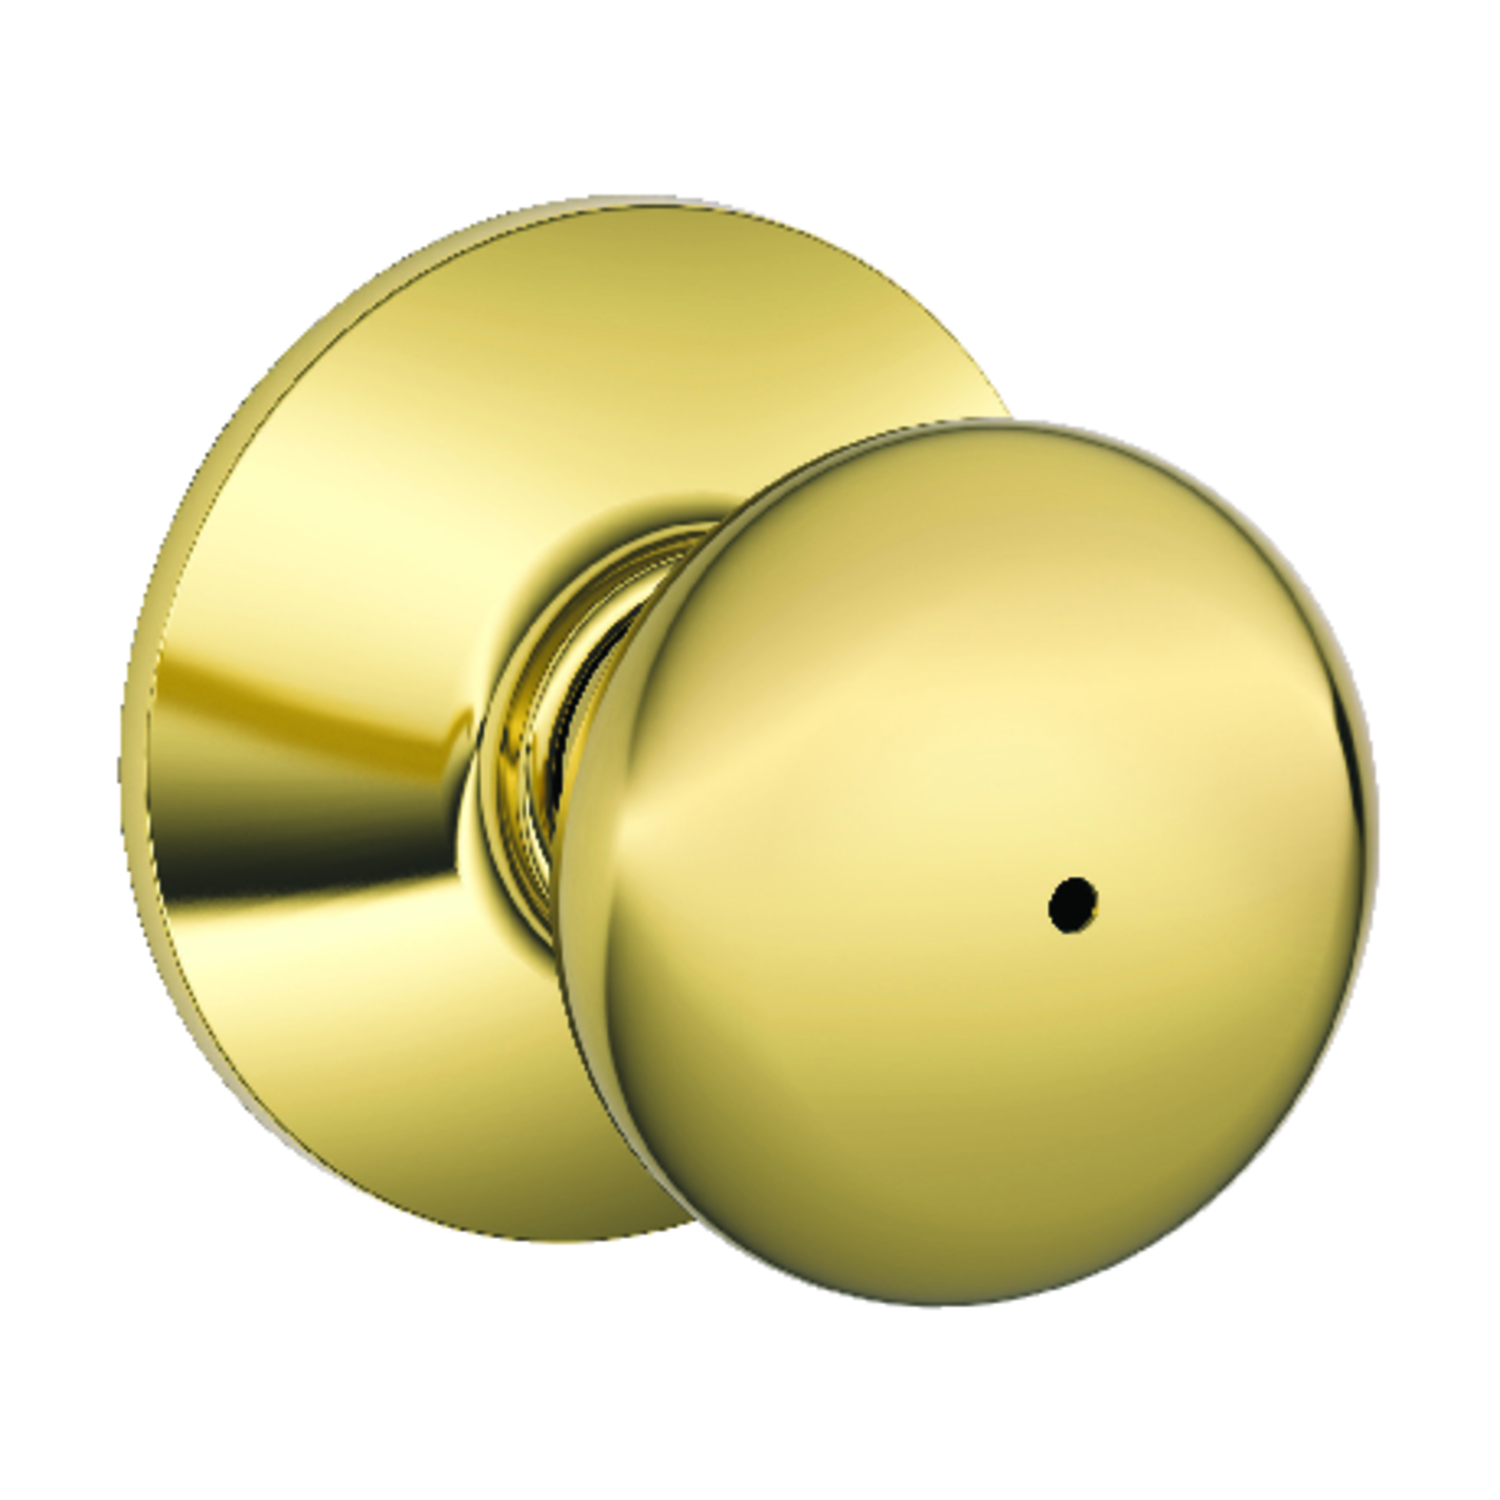 Schlage  Plymouth  Bright Brass  Steel  Privacy Lockset  ANSI Grade 2  1-3/4 in.